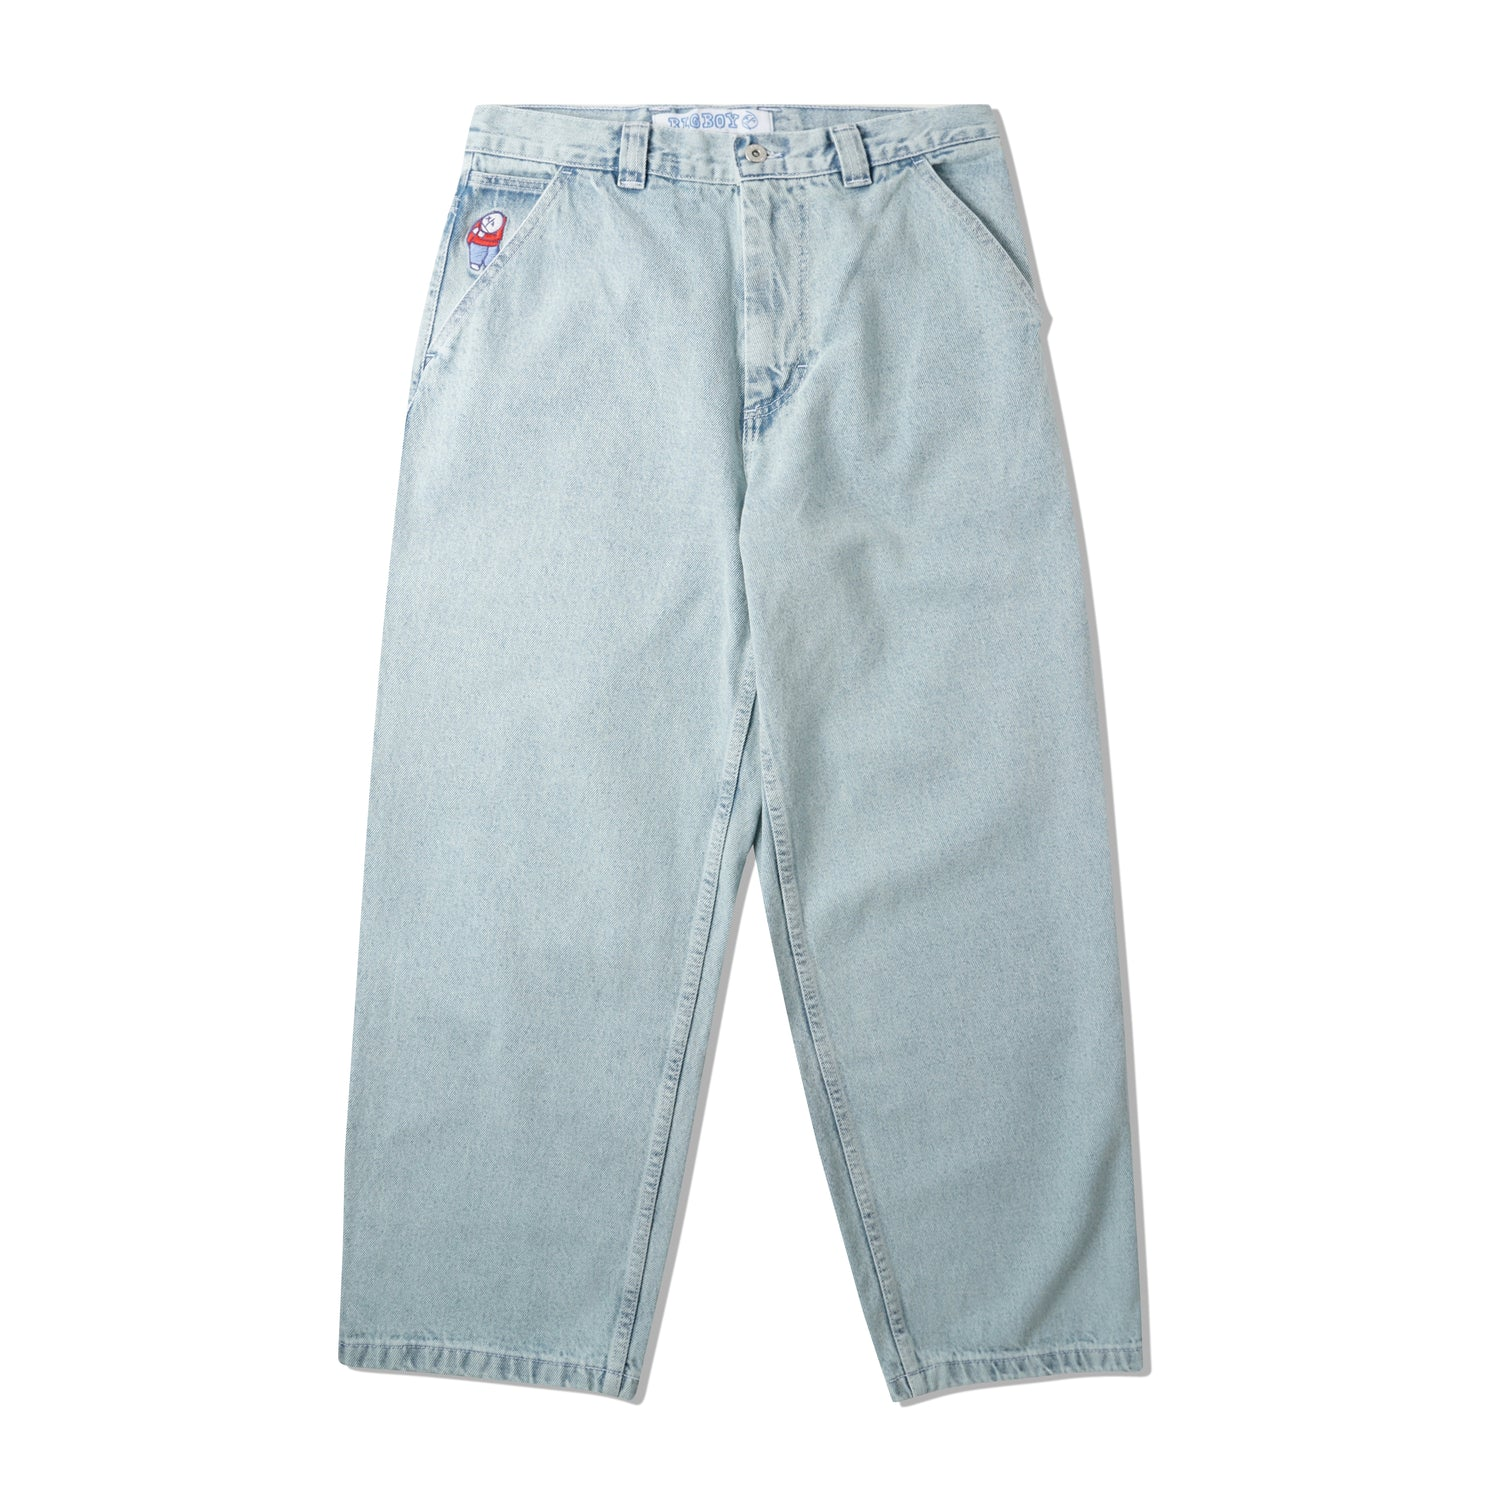 Big Boy Work Pants, Light Blue